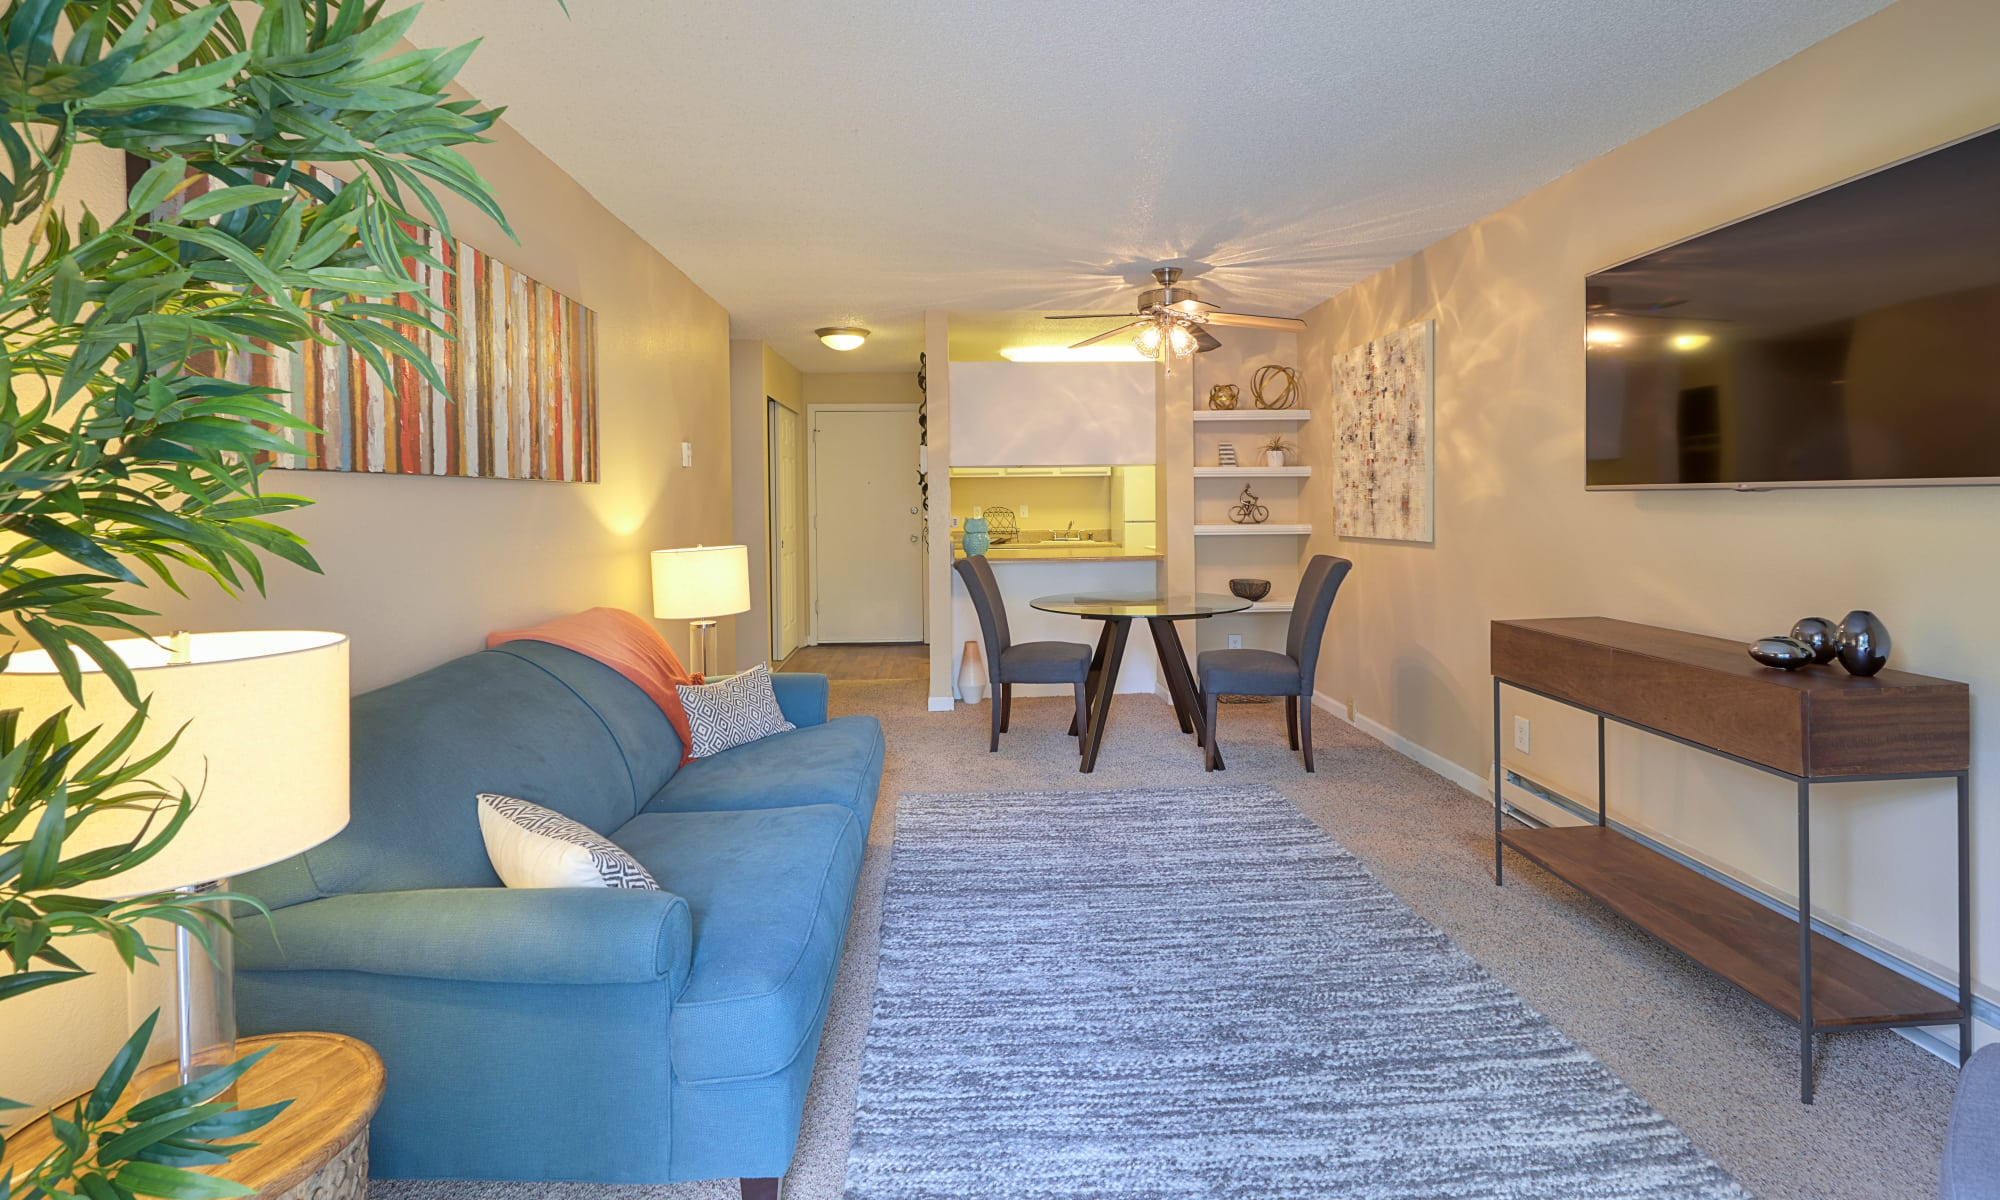 Learn more about The Boulevard at South Station Apartment Homes in Tukwila, WA